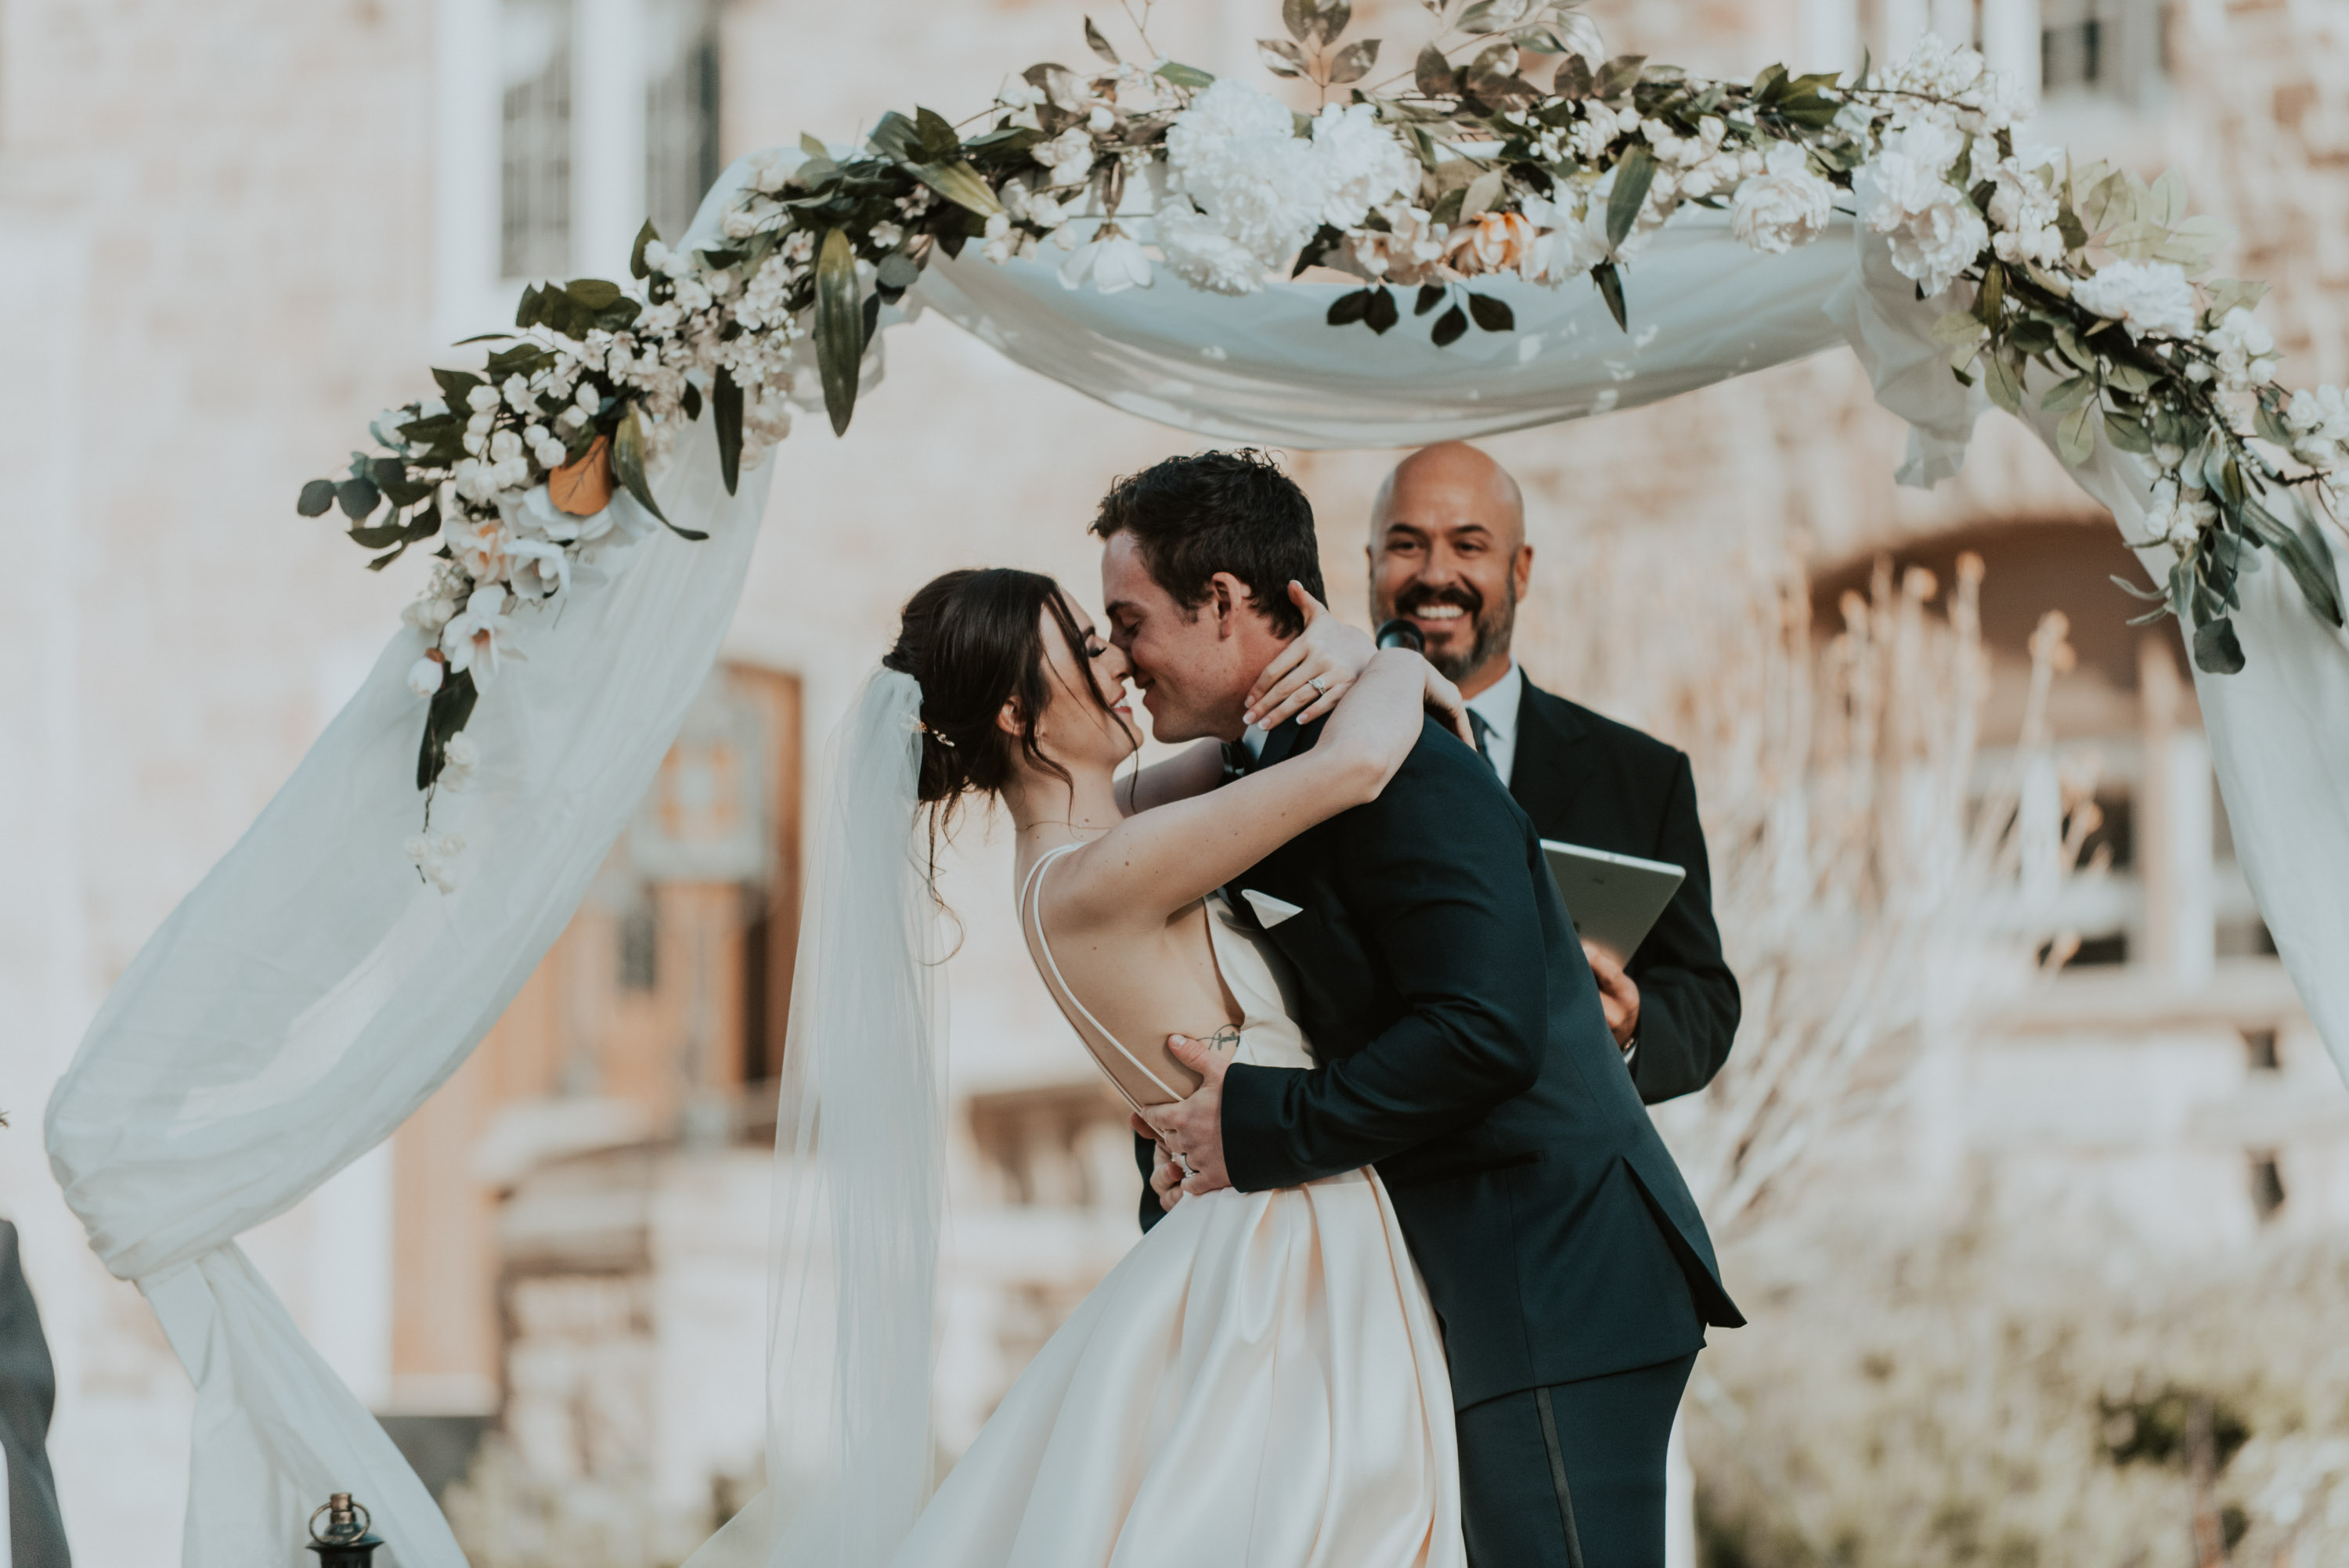 devyn+coleton tied the knot at the highlands ranch mansion in highlands ranch colorado on the perfect spring day in may! devyn+coleton tied the knot at the highlands ranch mansion in highlands ranch colorado on the perfect spring day in may!